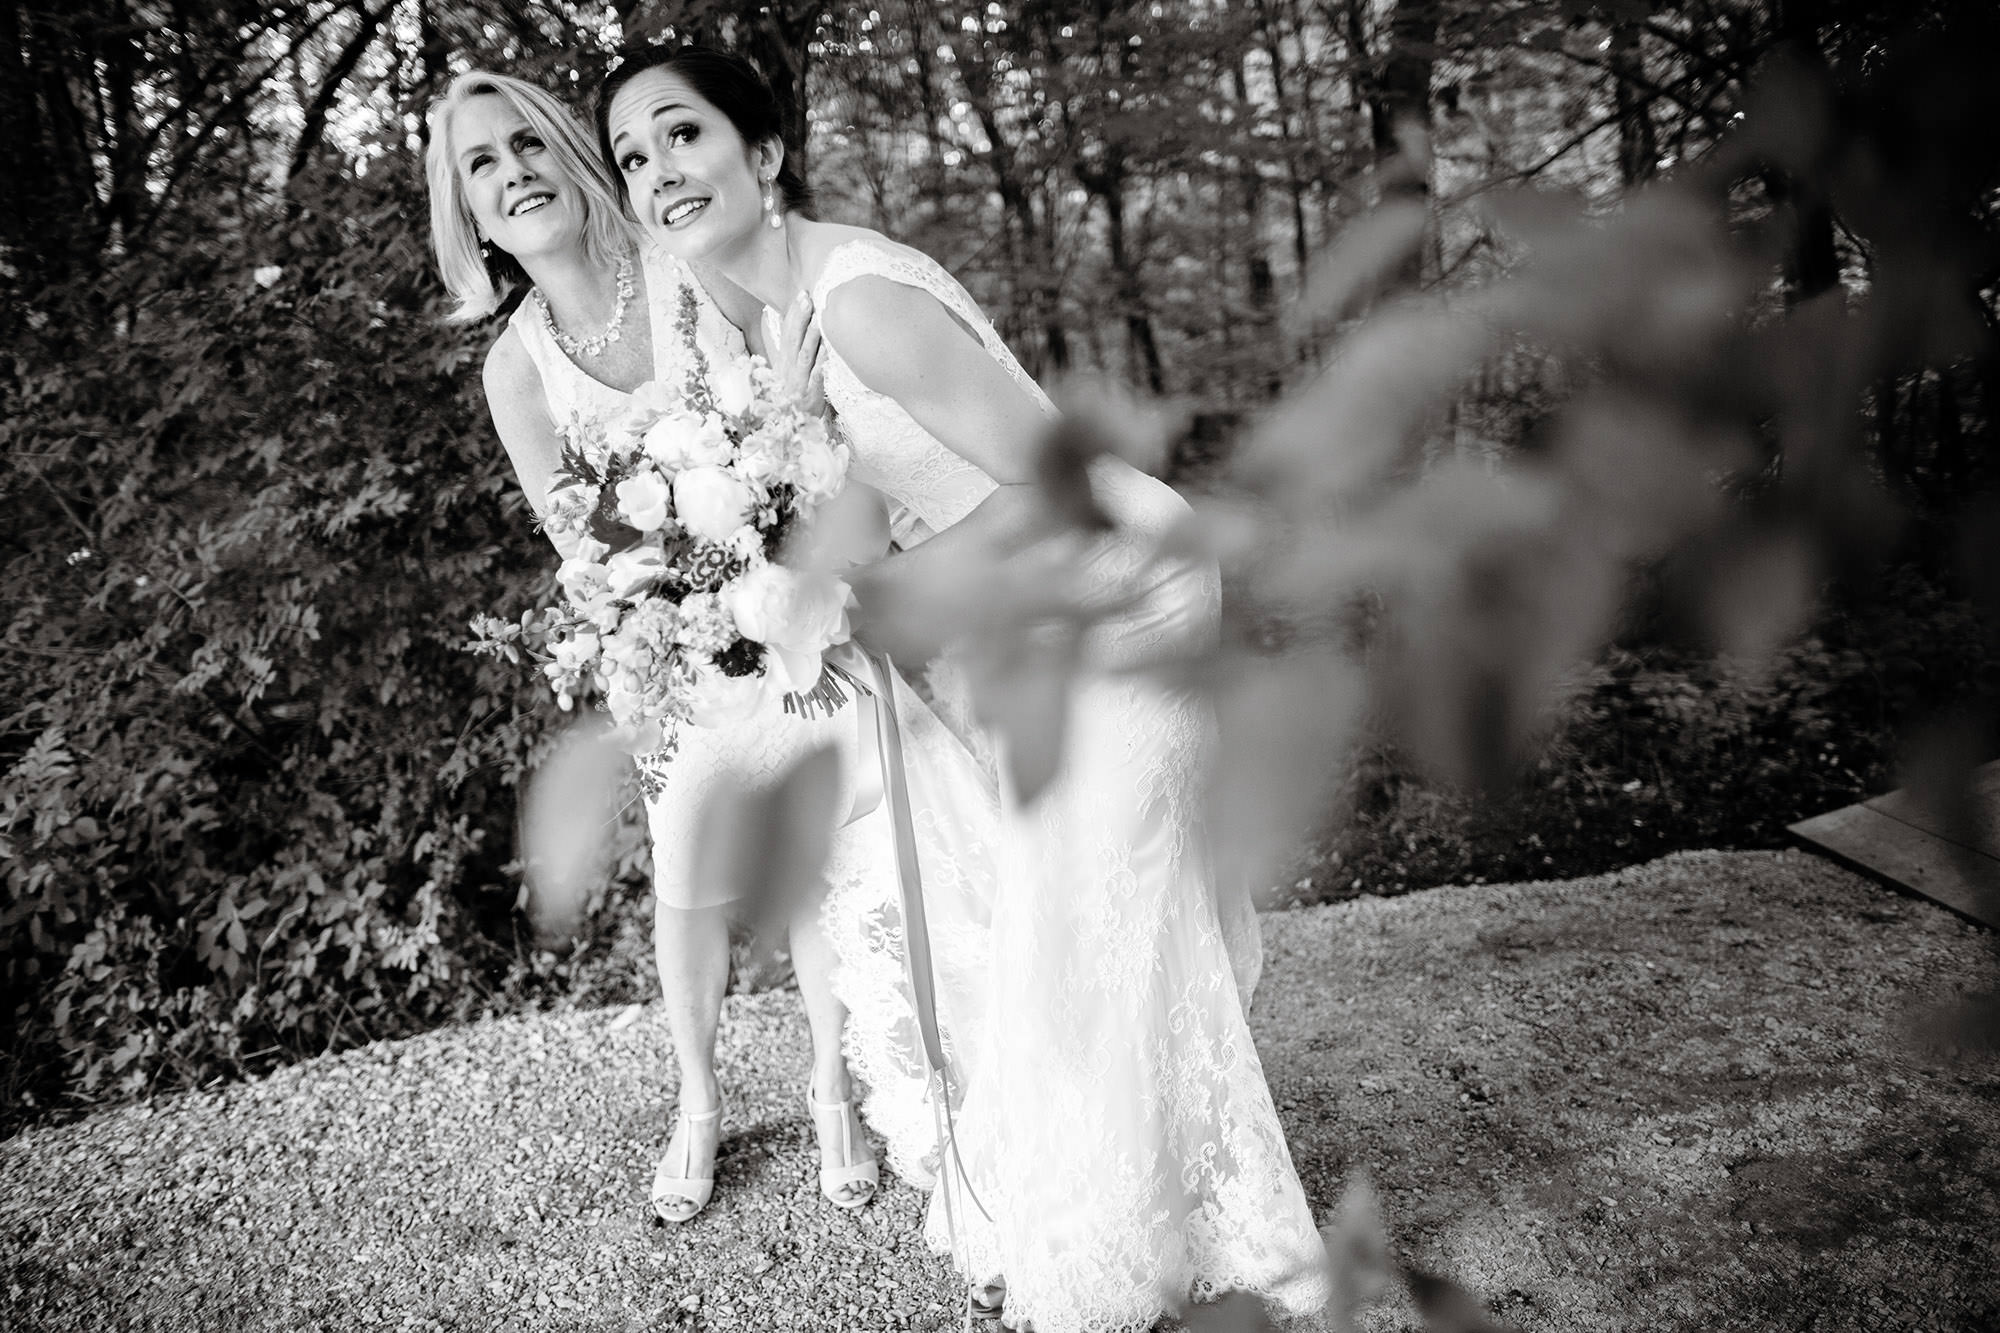 The bride waits with her mother prior to their outdoor wedding ceremony.